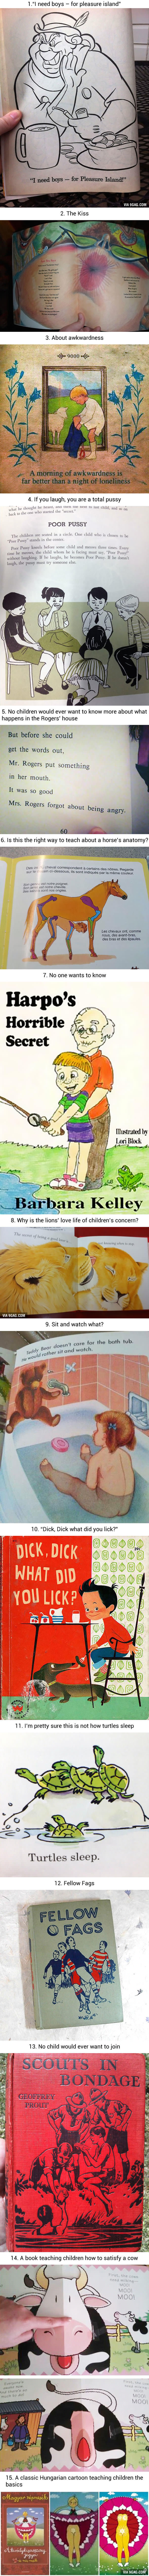 Extremely Inappropriate Things Found In Childrens Books - 15 horrific things ever found food